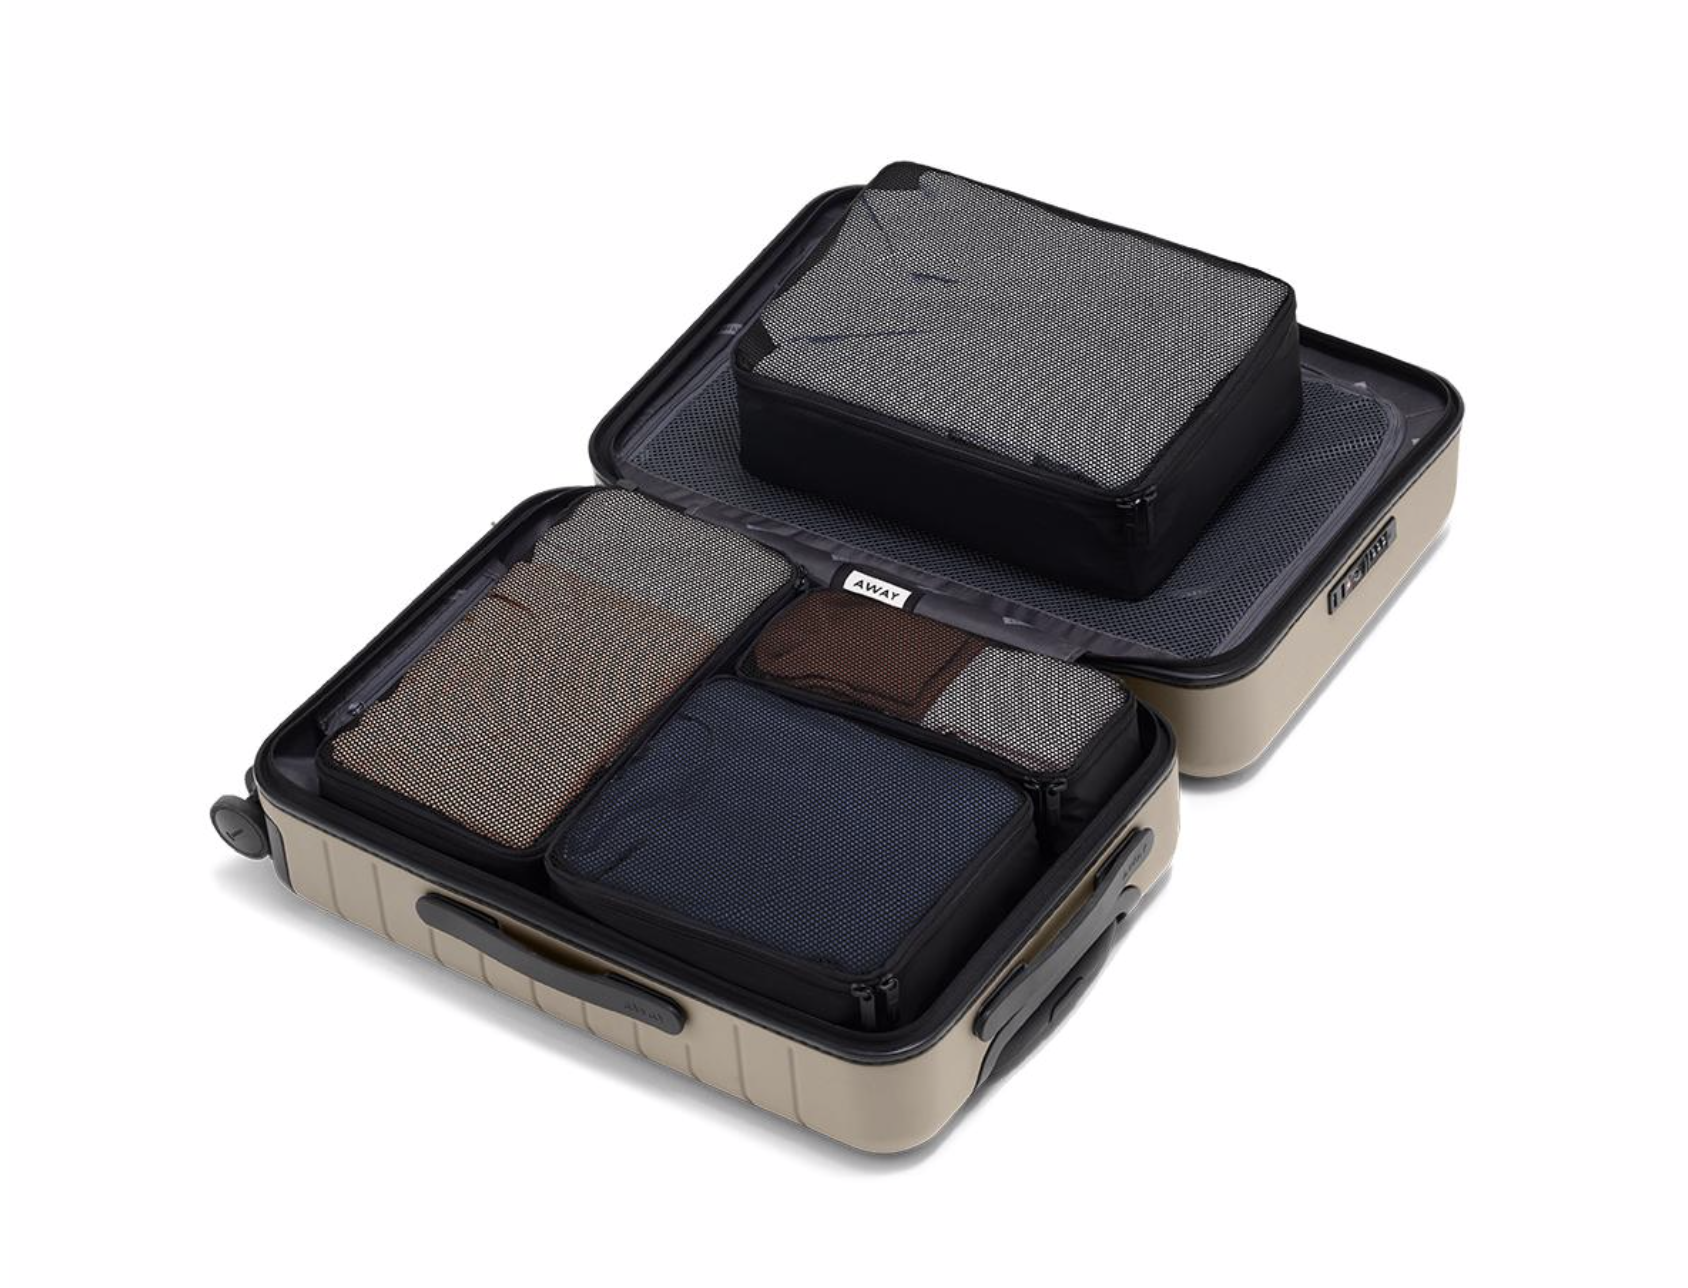 Packing Cubes - Make the Most of Your Space, Keep Things Organized, Easier Unpacking Protect Your Items